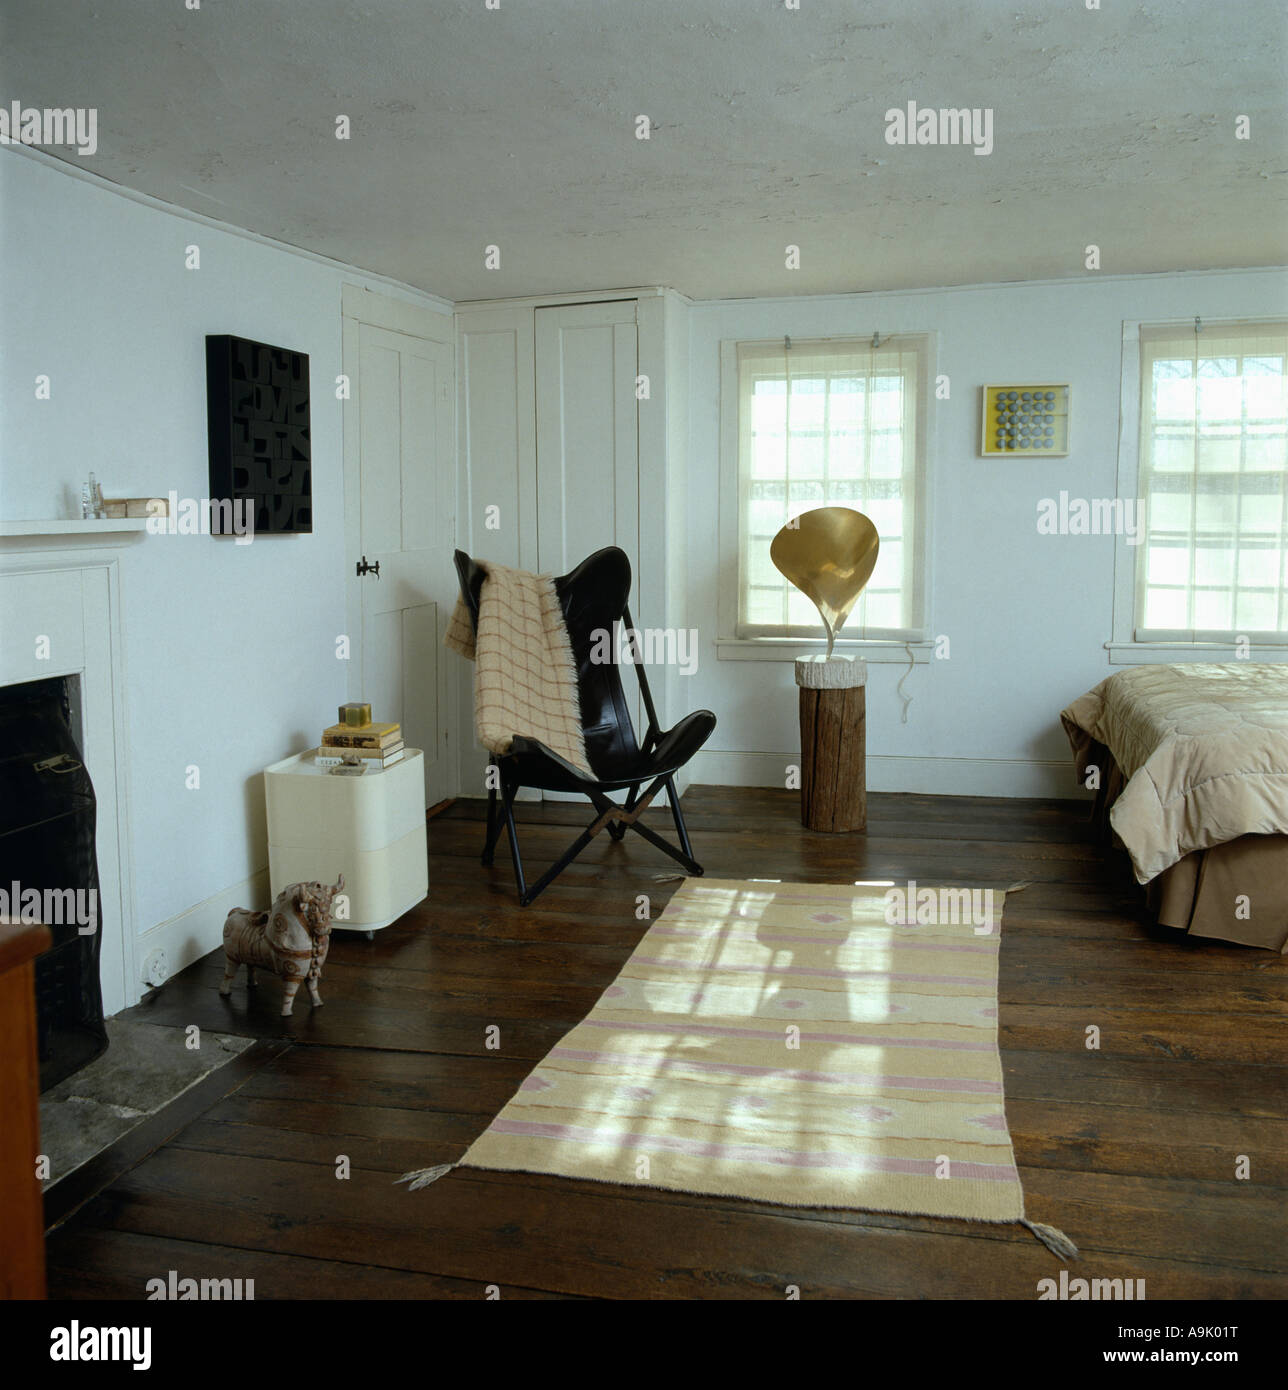 Leather Bedroom Chair Cream Rug On Dark Wood Polished Floor In White Bedroom With